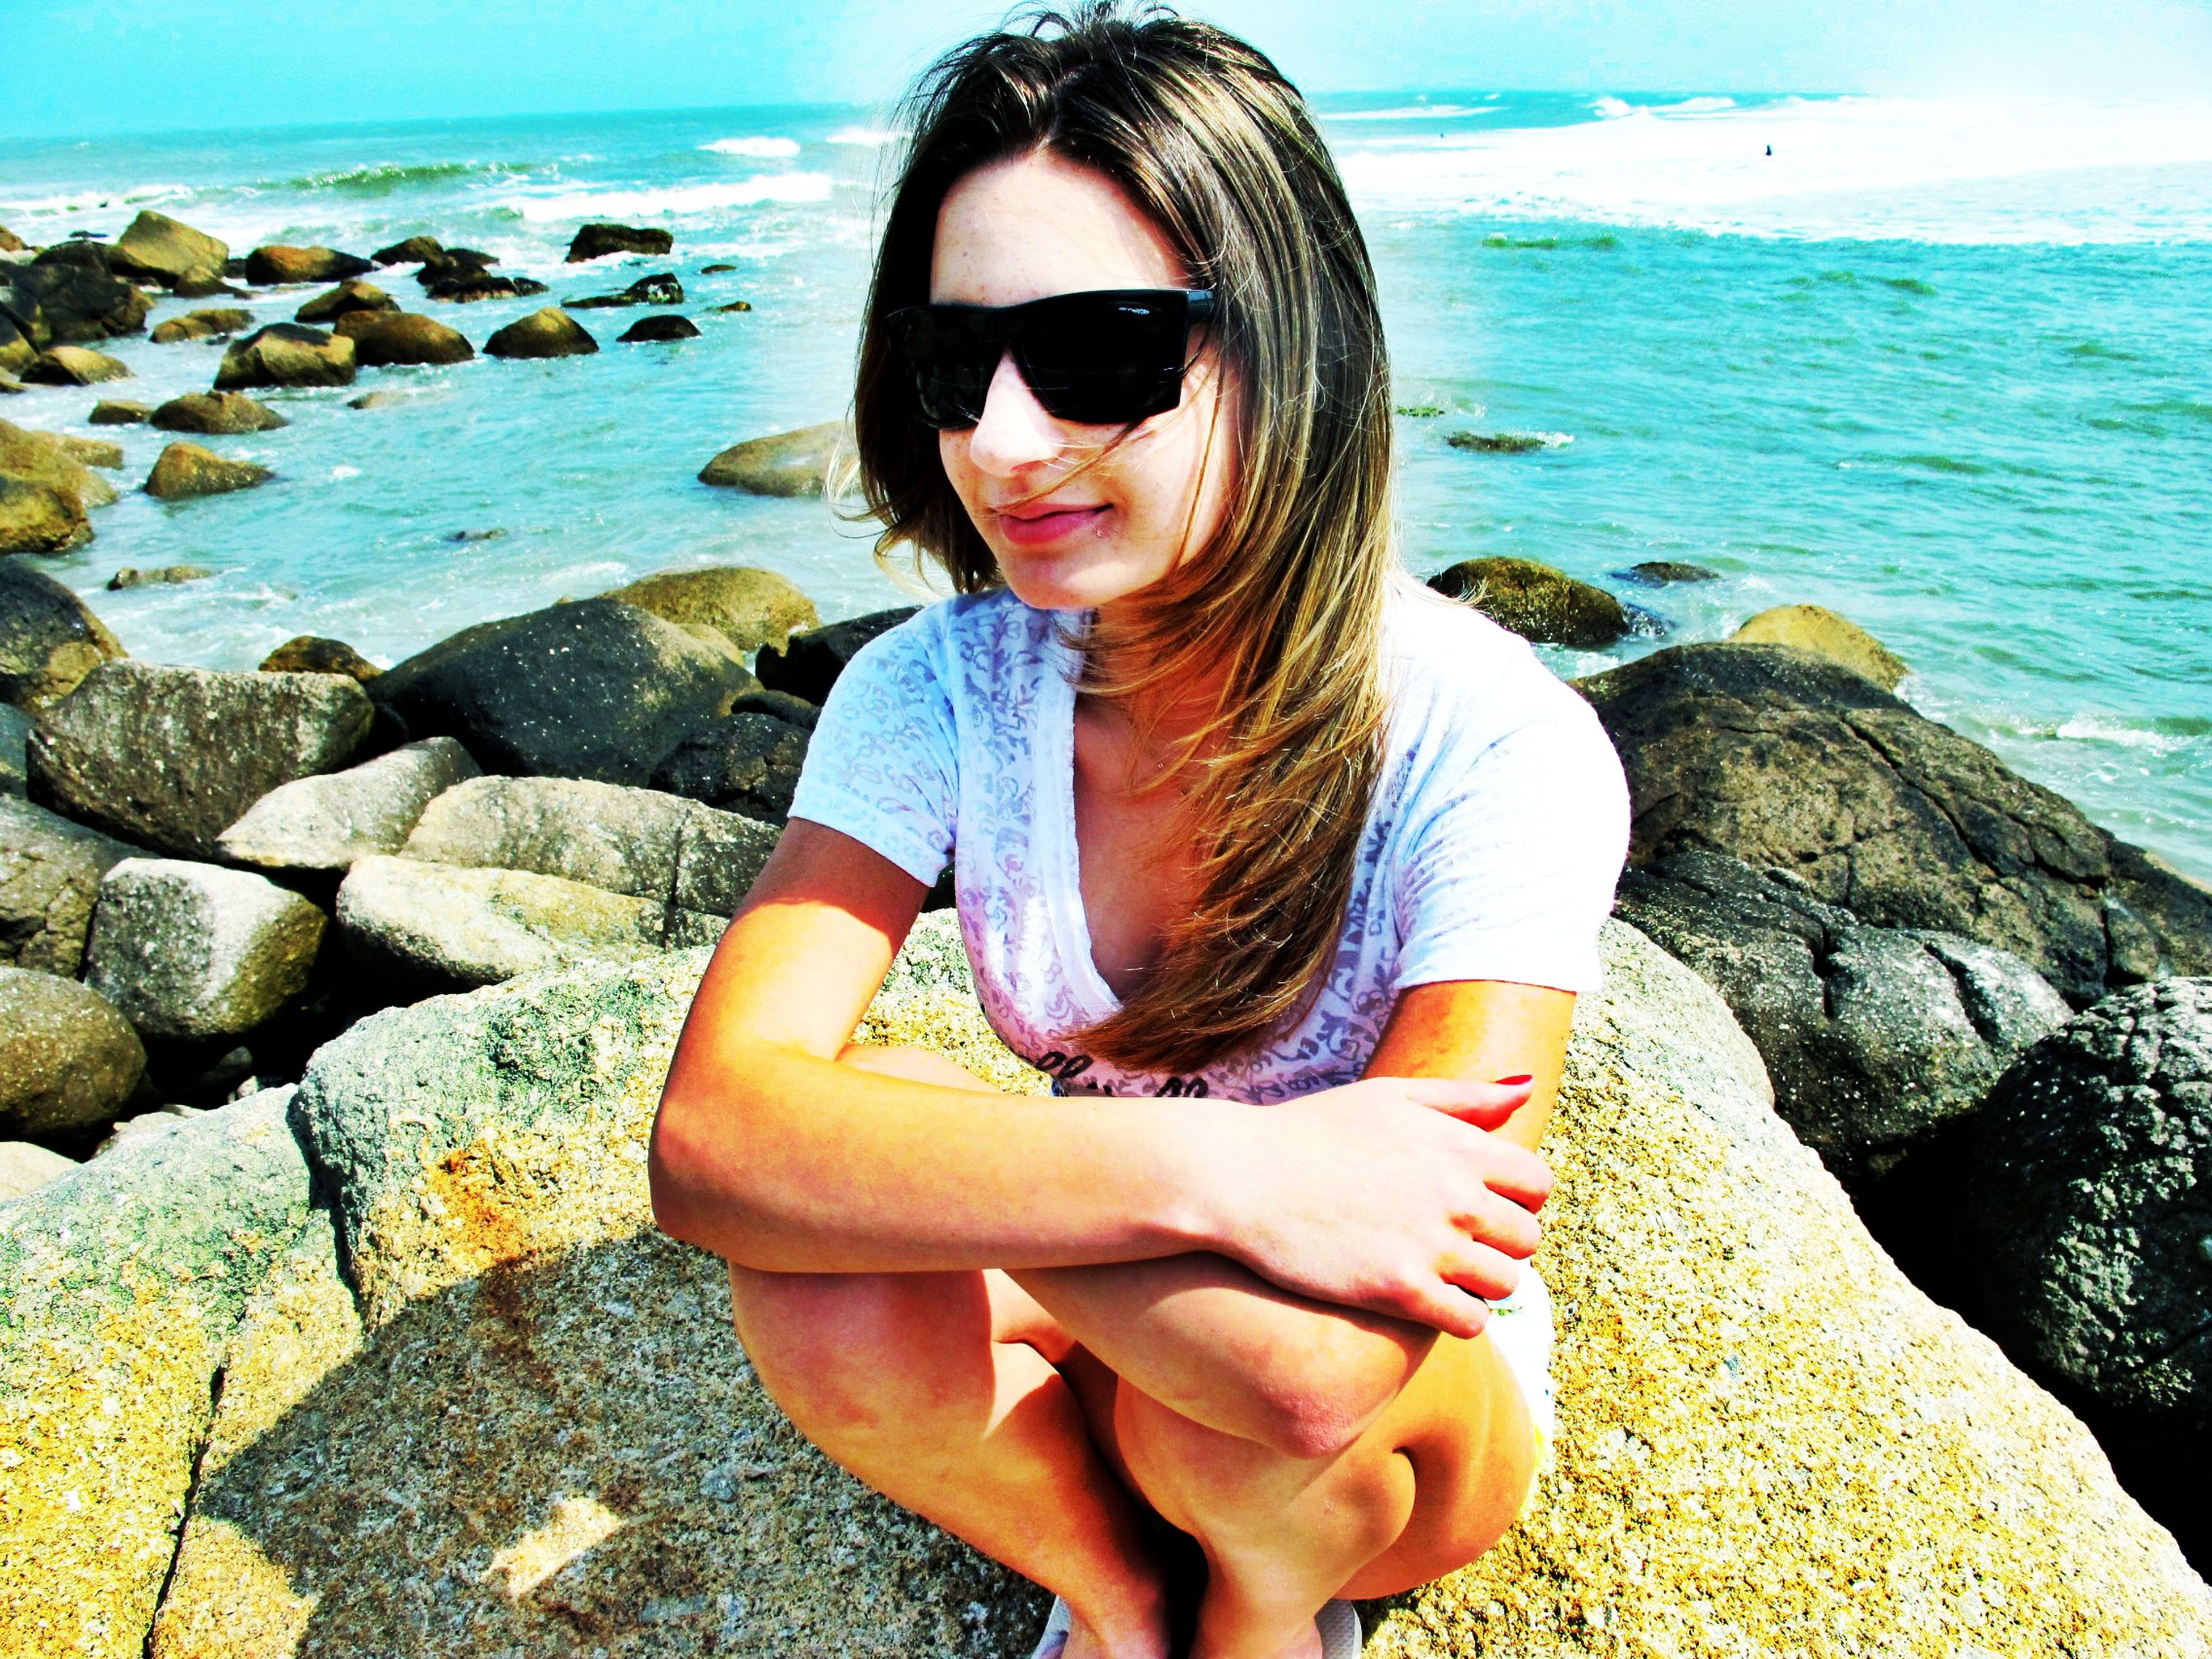 lifestyles, sea, water, beach, leisure activity, young adult, person, sunglasses, vacations, shore, young women, portrait, rock - object, looking at camera, casual clothing, sitting, sunlight, front view